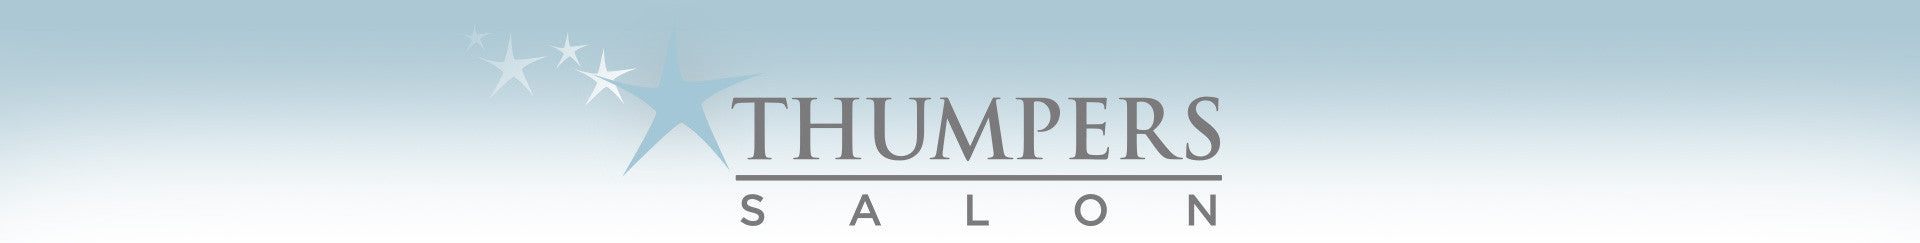 Thumpers Salon